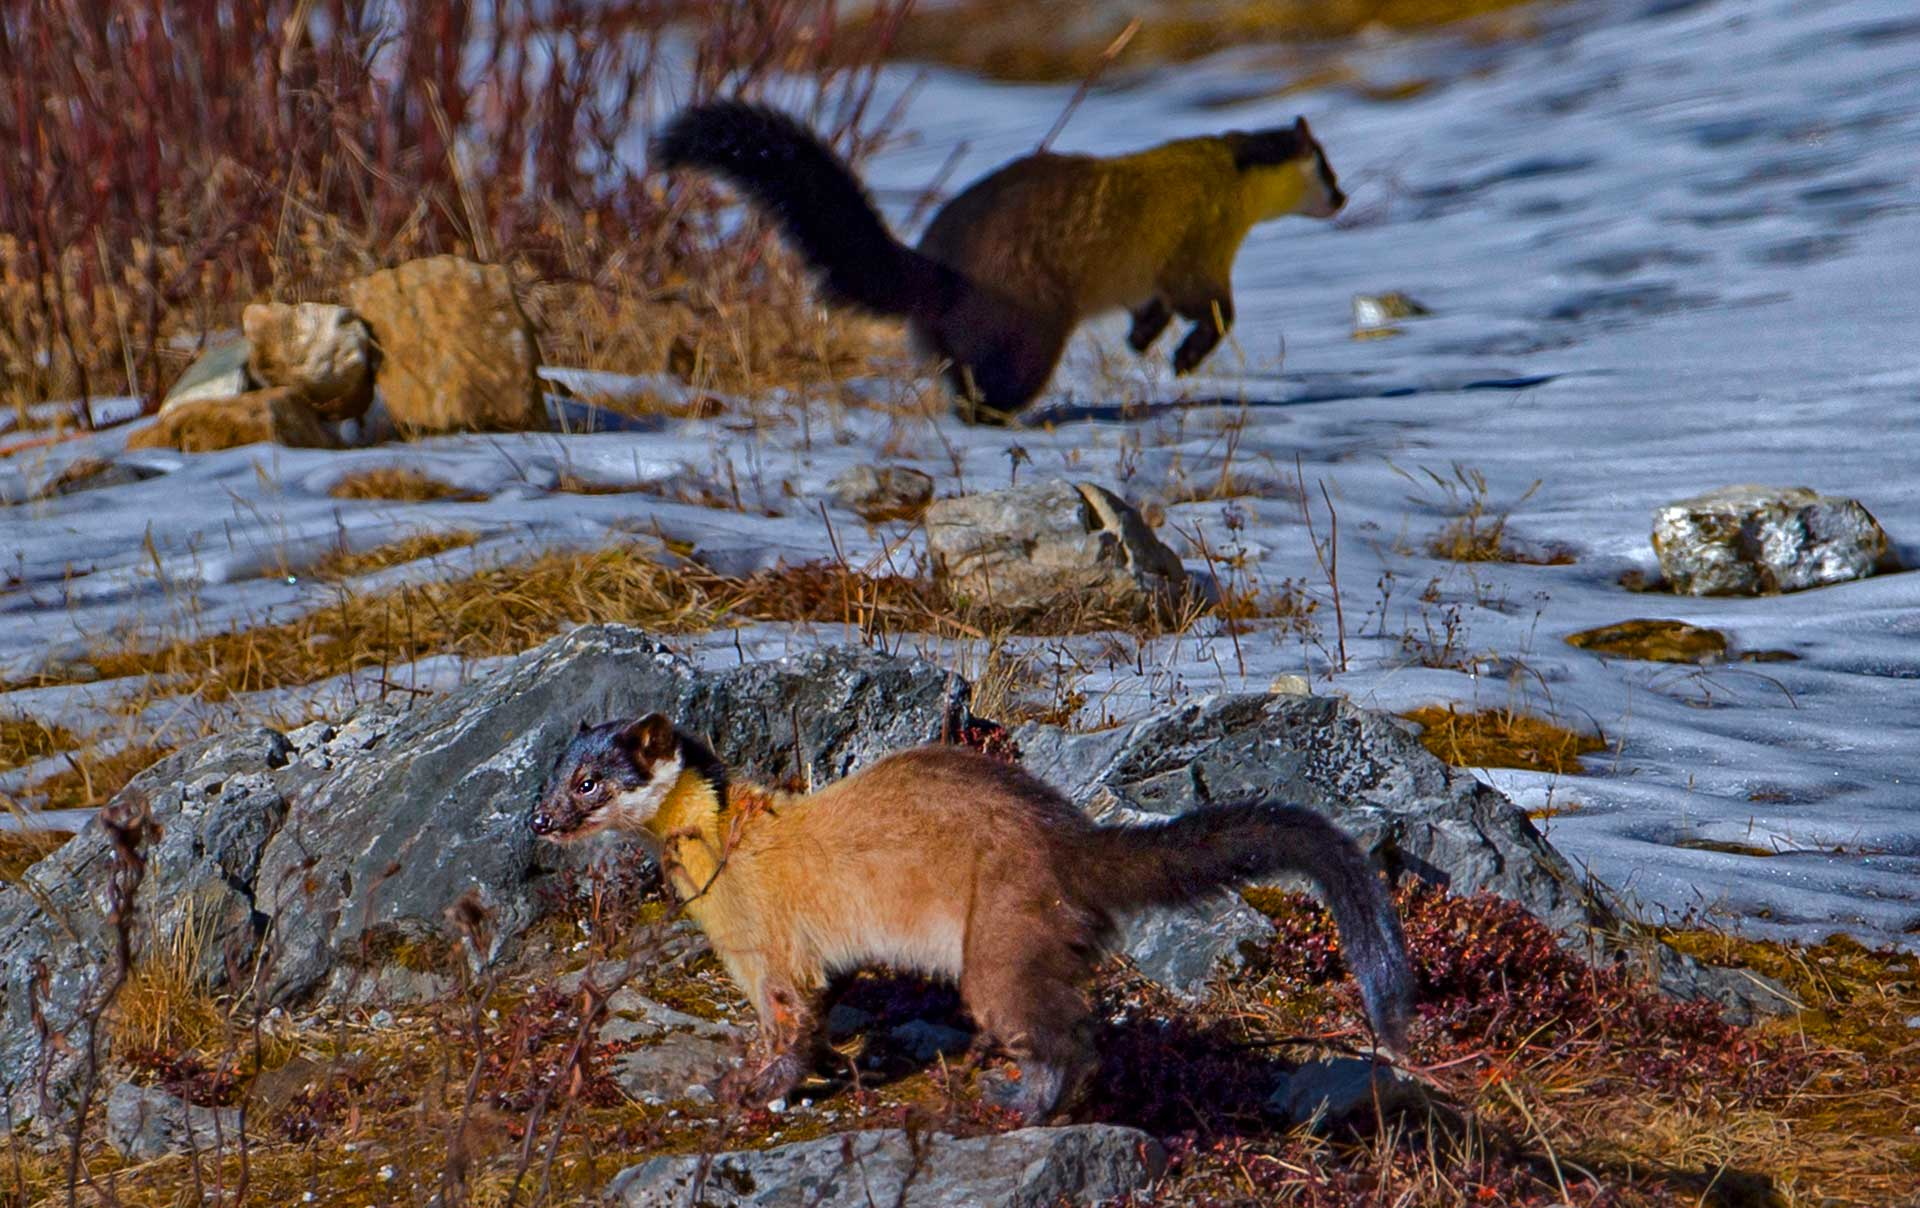 """Wildlife photographer Dhritiman Mukherjee has seen the yellow-throated marten countless times across the Himalayan range. """"They are all over Uttarakhand, but I've also seen them in Singalila in West Bengal, Eaglenest in Arunachal Pradesh, and in some parts of Himachal too.""""  This photo was taken in Pangolakha Wildlife Sanctuary in eastern Sikkim. The sanctuary is located at 4,200 m — about the highest altitudes at which the yellow-throated marten is found. """"It was wintertime, and this pair was hunting in the snow, looking for something to eat,"""" Mukherjee says. """"Walking through the forest, we would see them at least once a day."""" Photo: Dhritiman Mukherjee"""